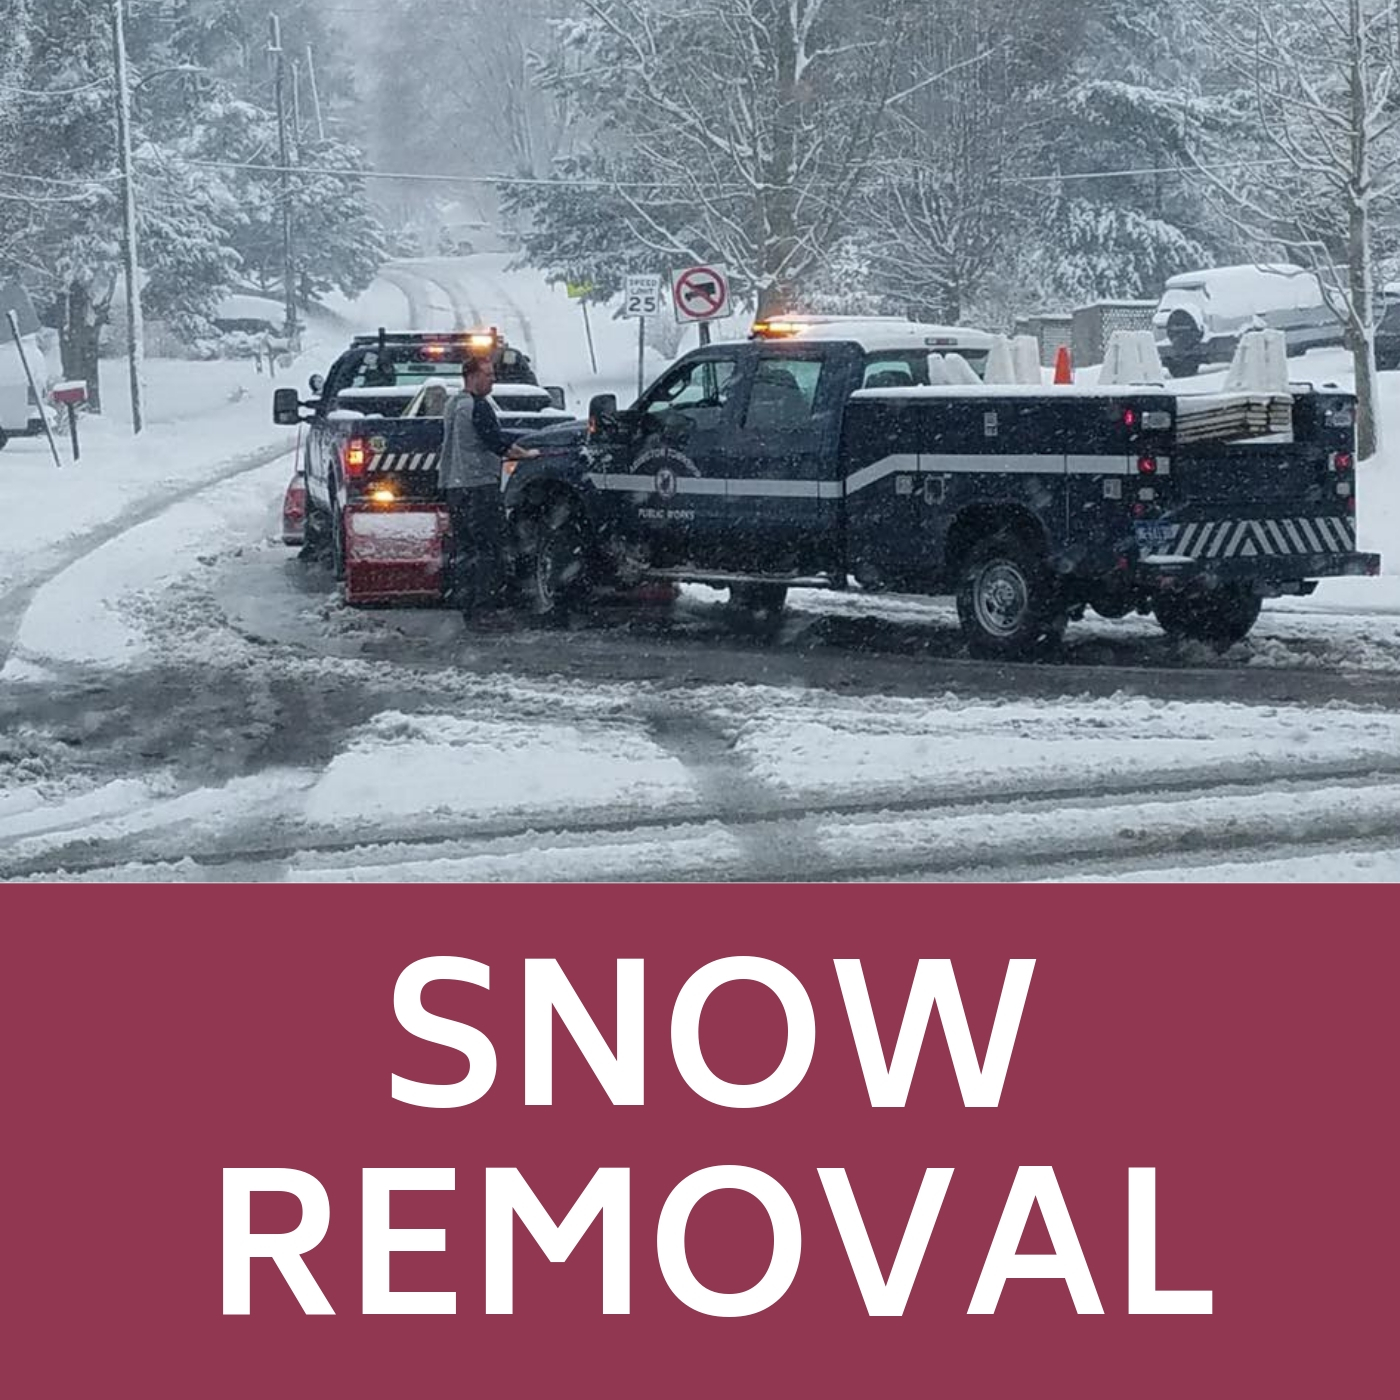 Snow Removal Icon that links to webpage with snow removal information